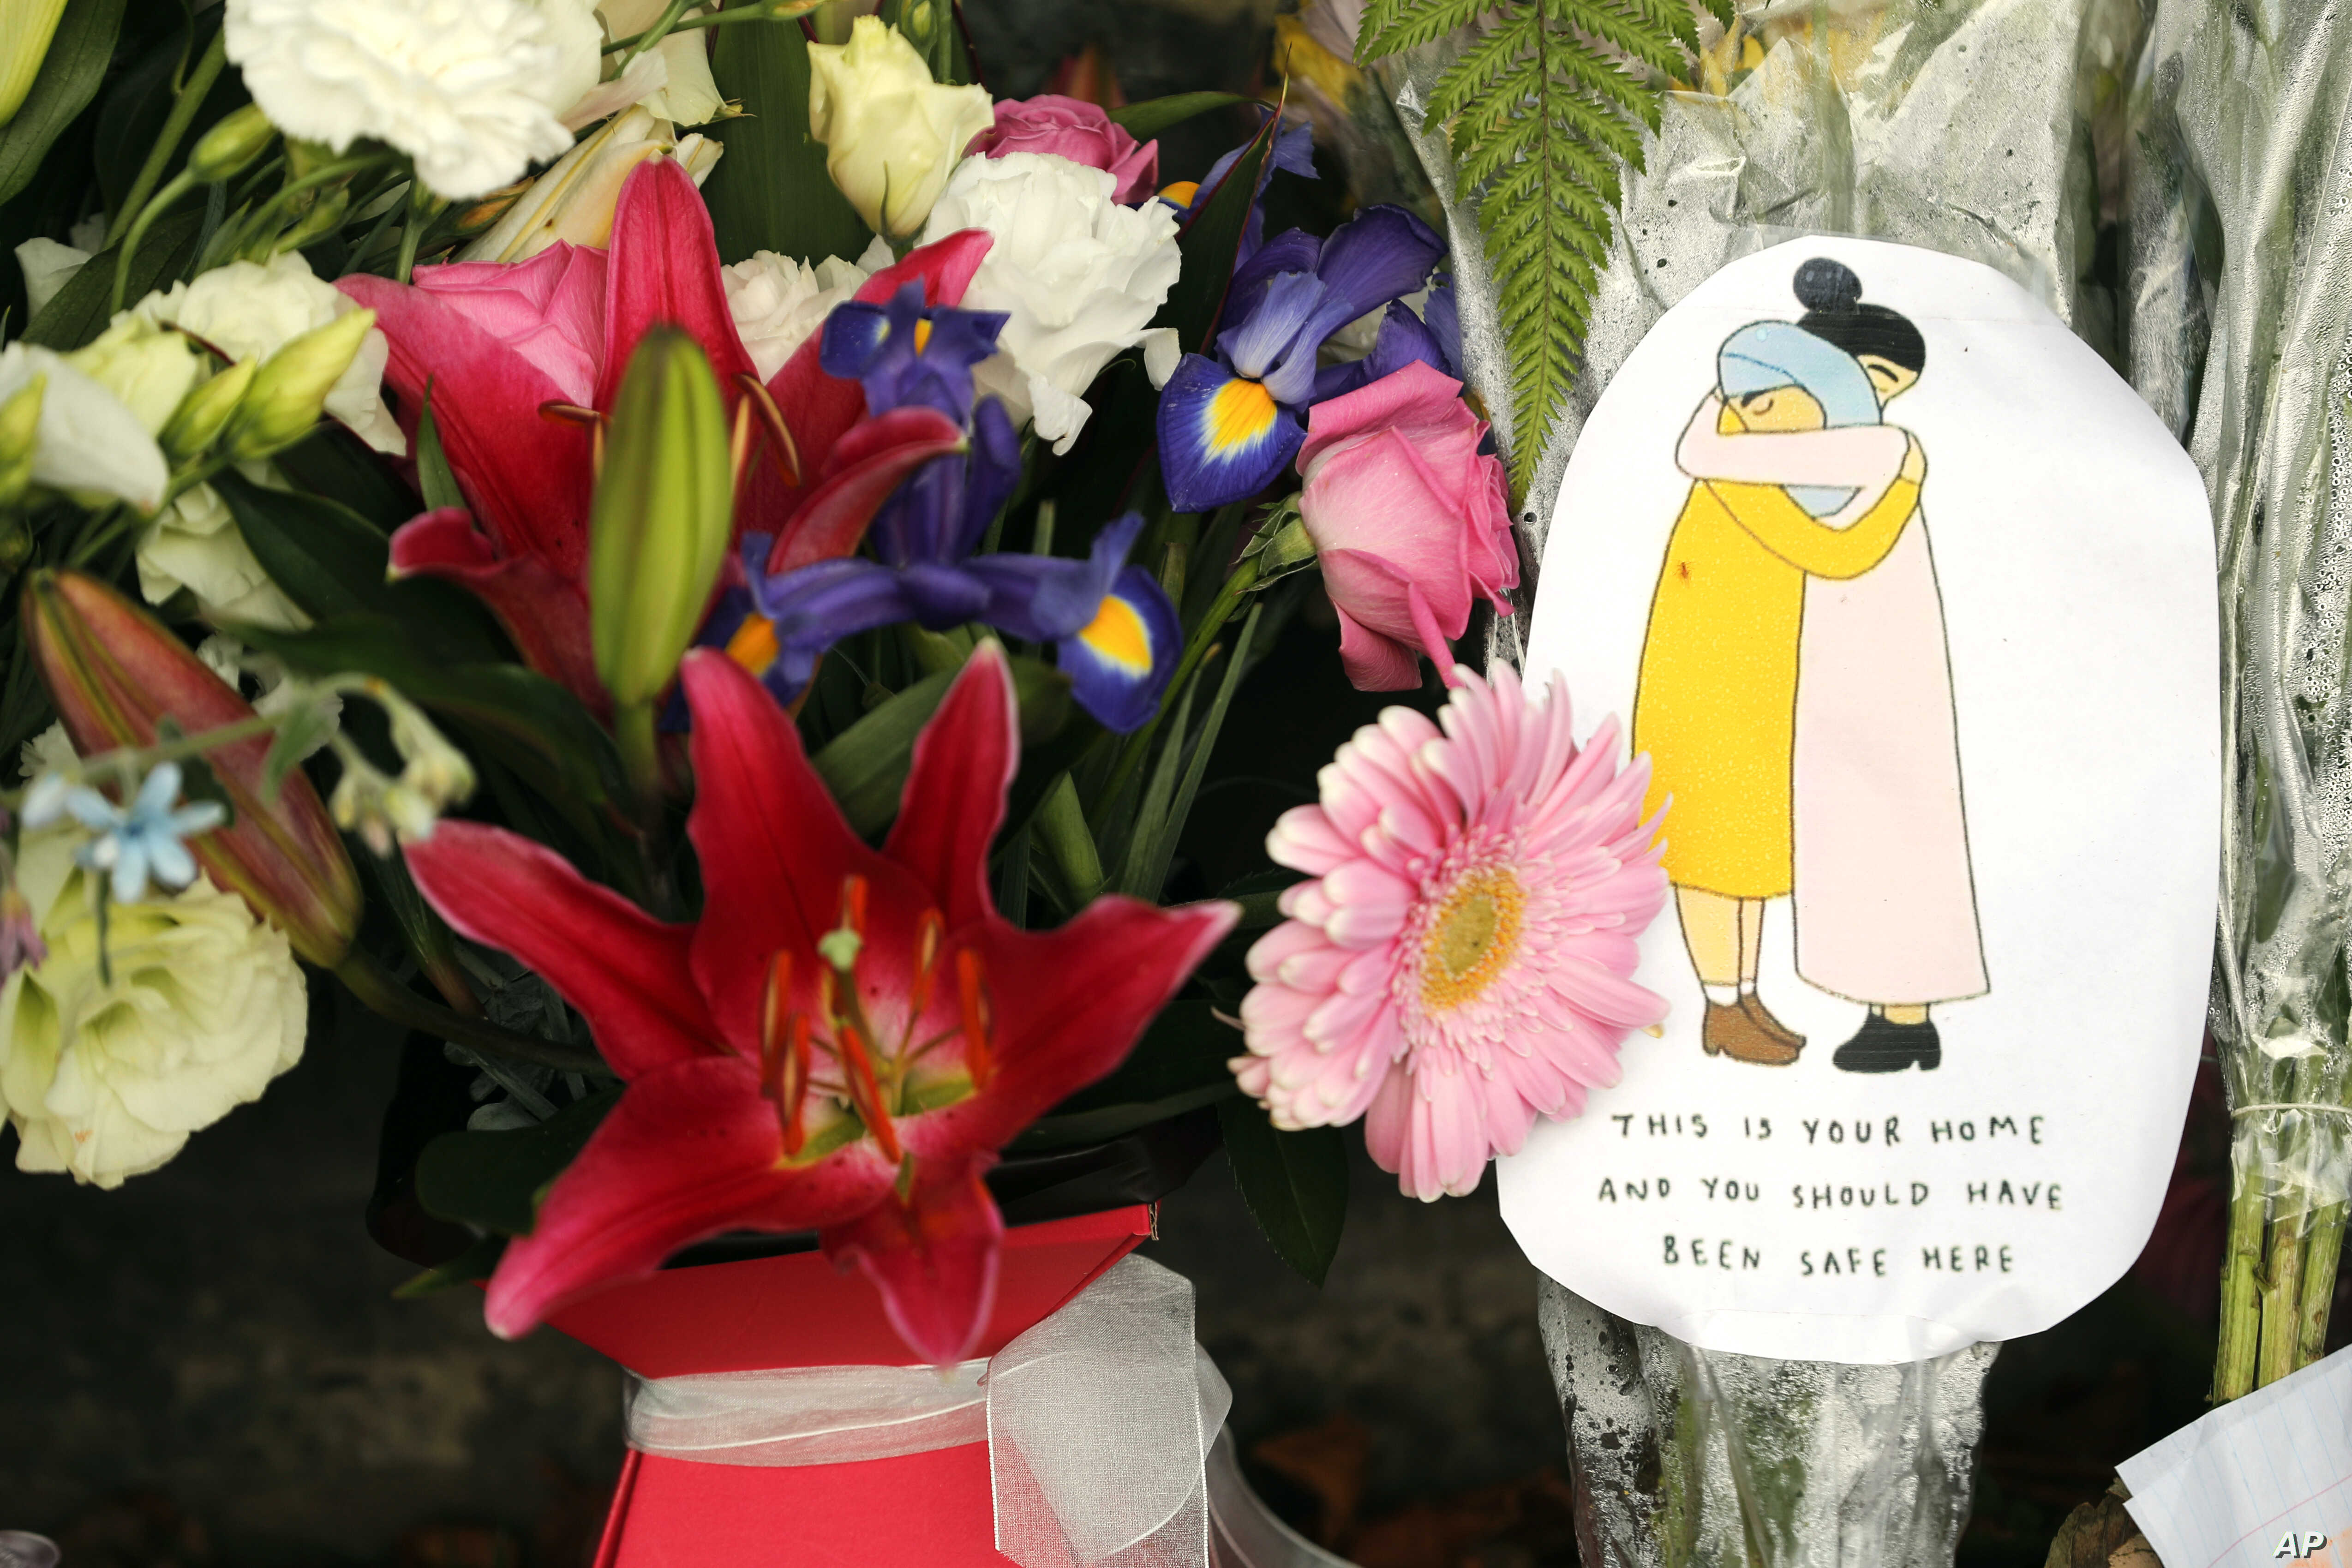 A message card is placed at a collection of flowers left at the Botanical Gardens in Christchurch, New Zealand, March 16, 2019.